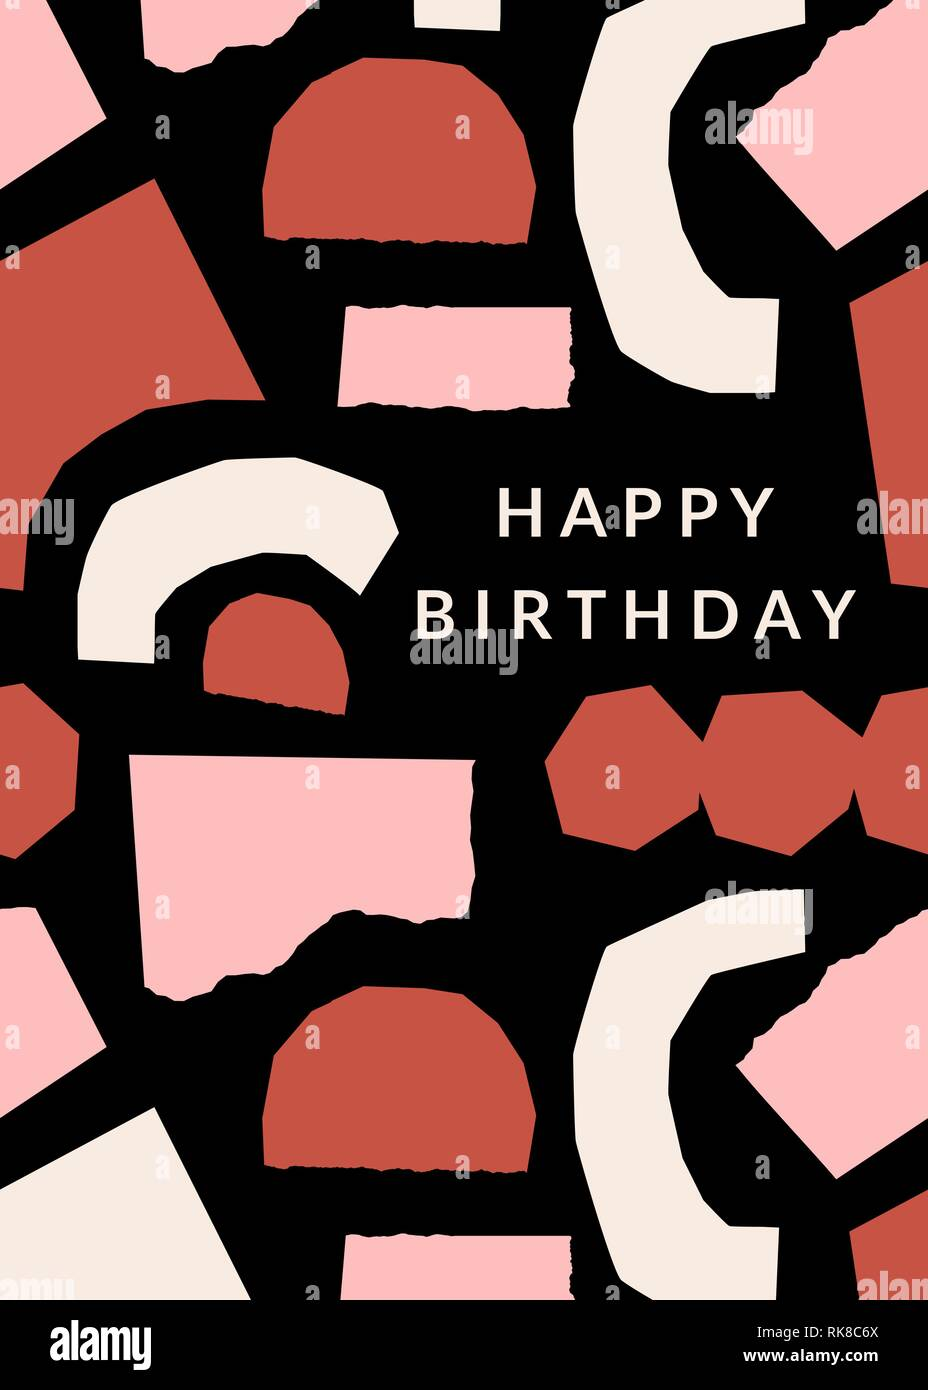 Greeting card template with paper cut shapes in cream, pastel pink Pertaining To Birthday Card Collage Template